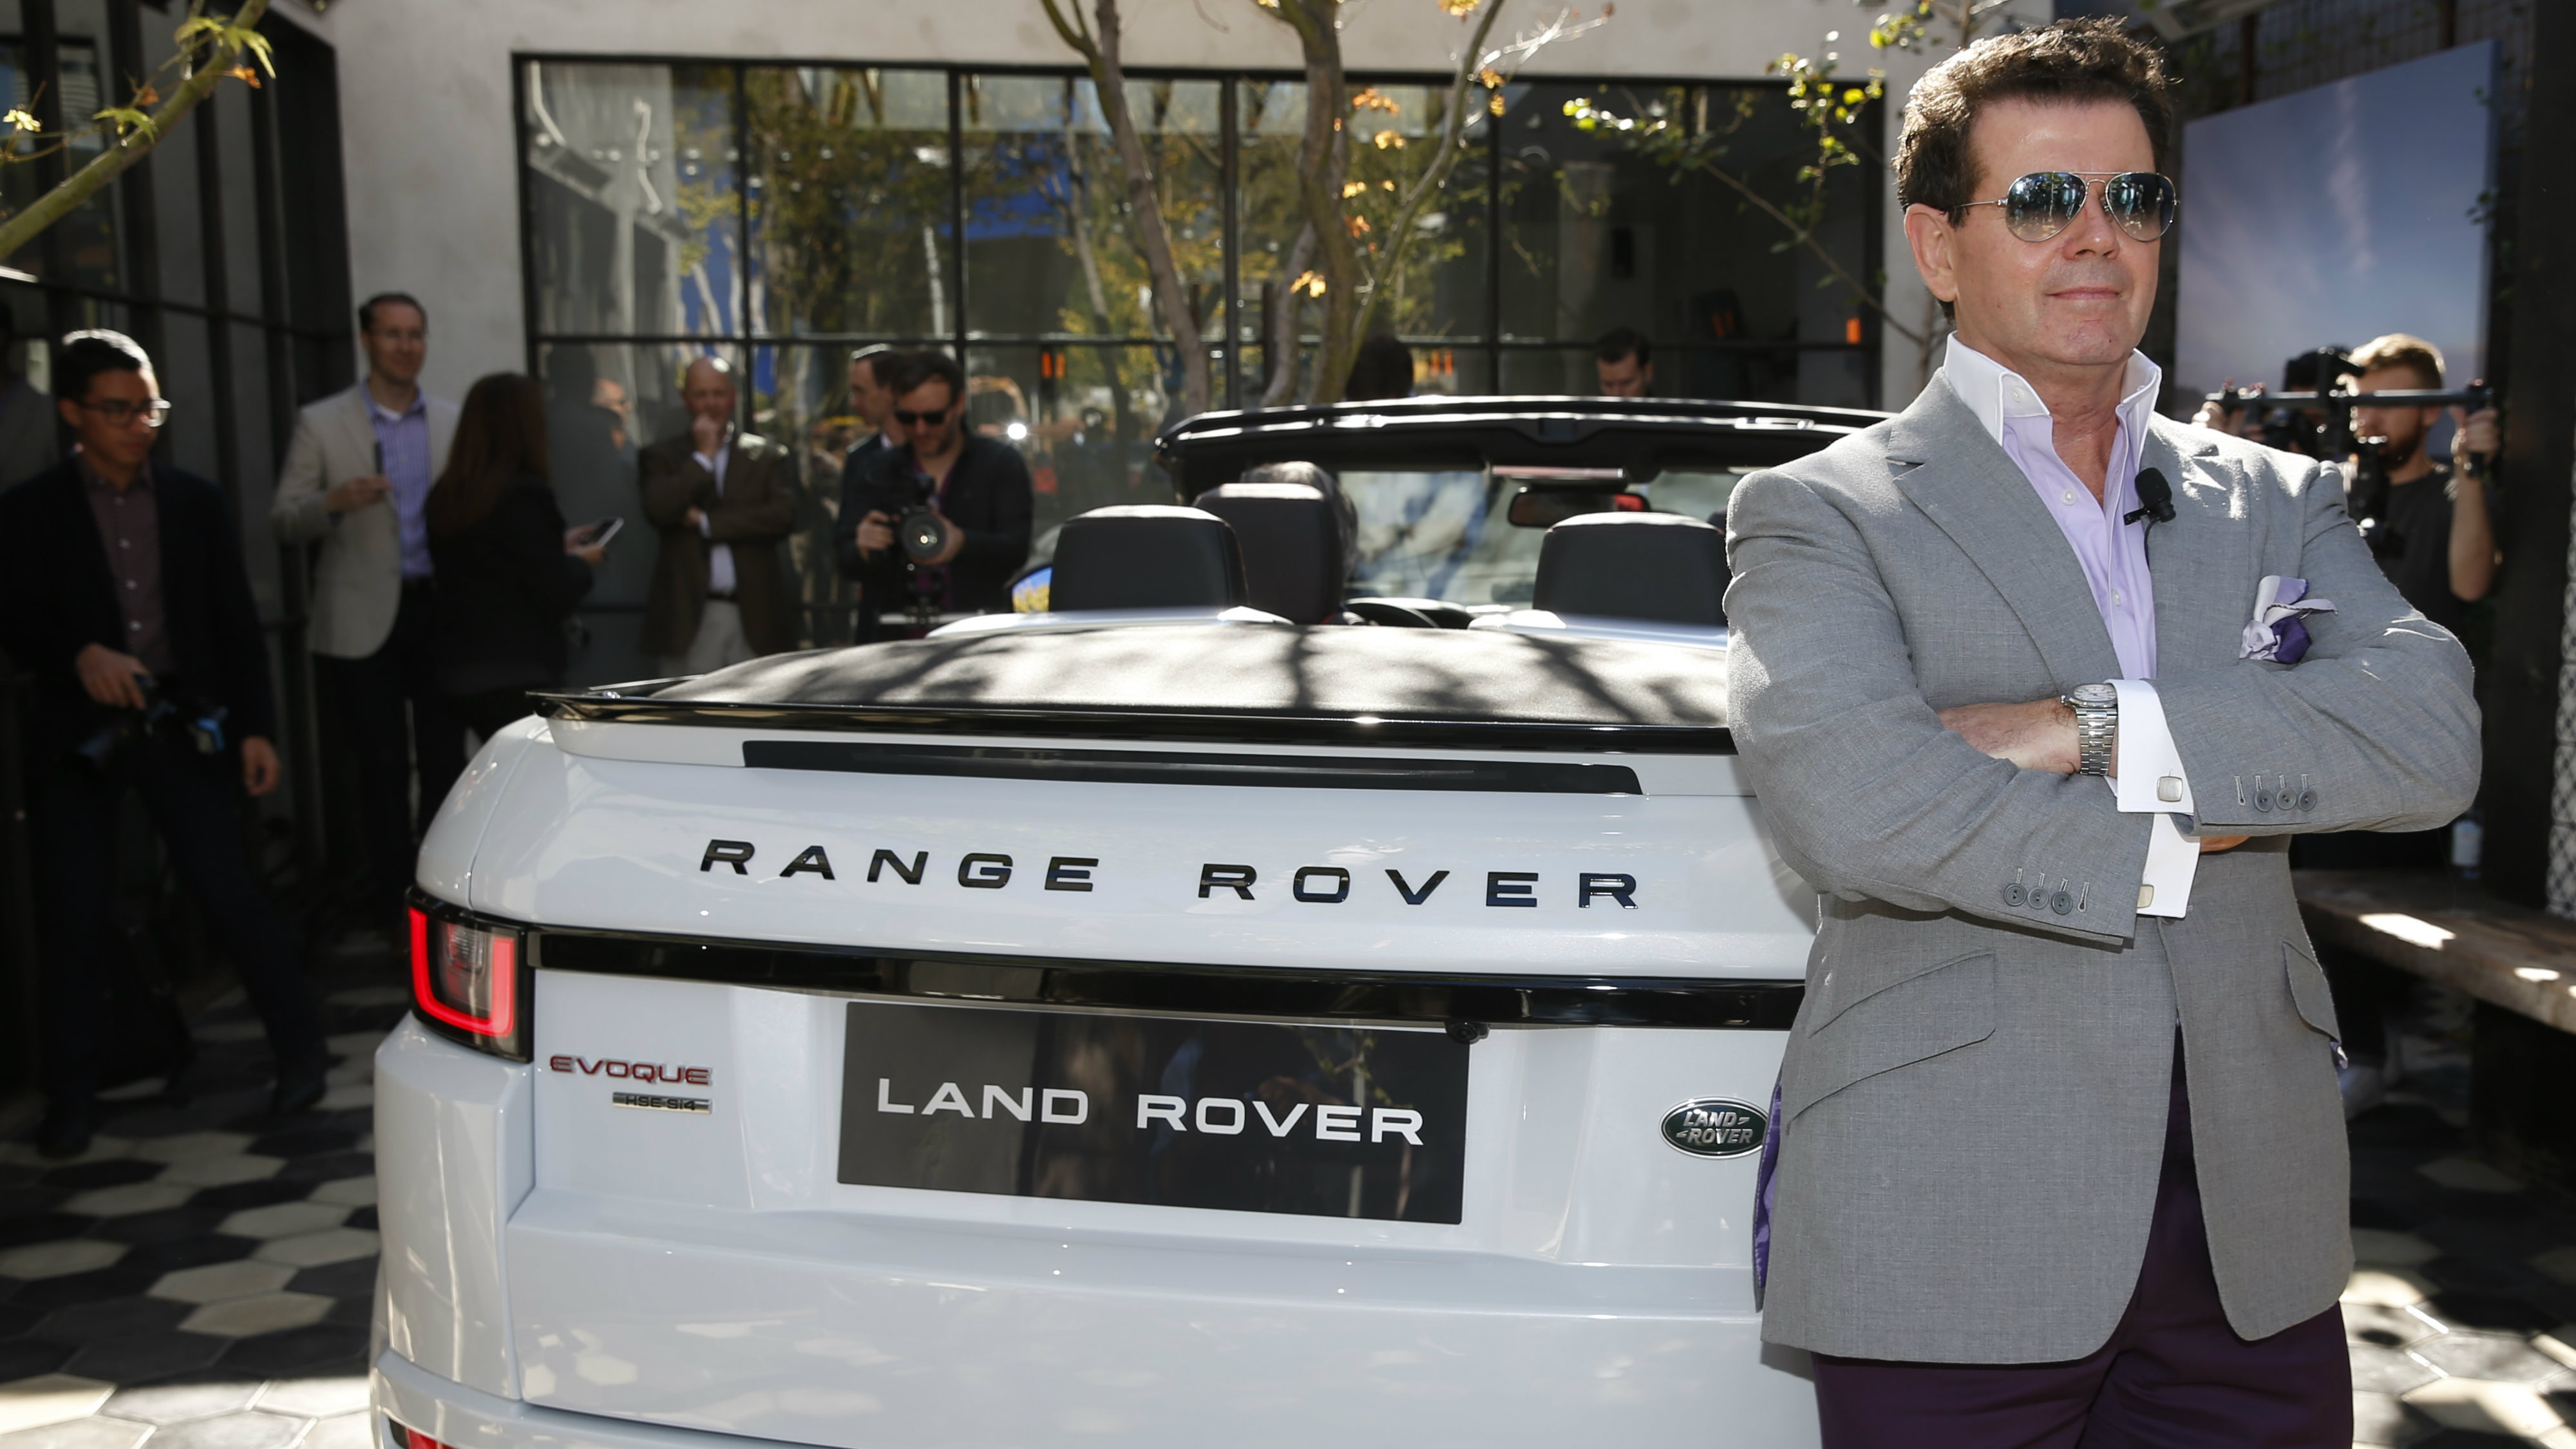 A man poses in front a Range Rover.